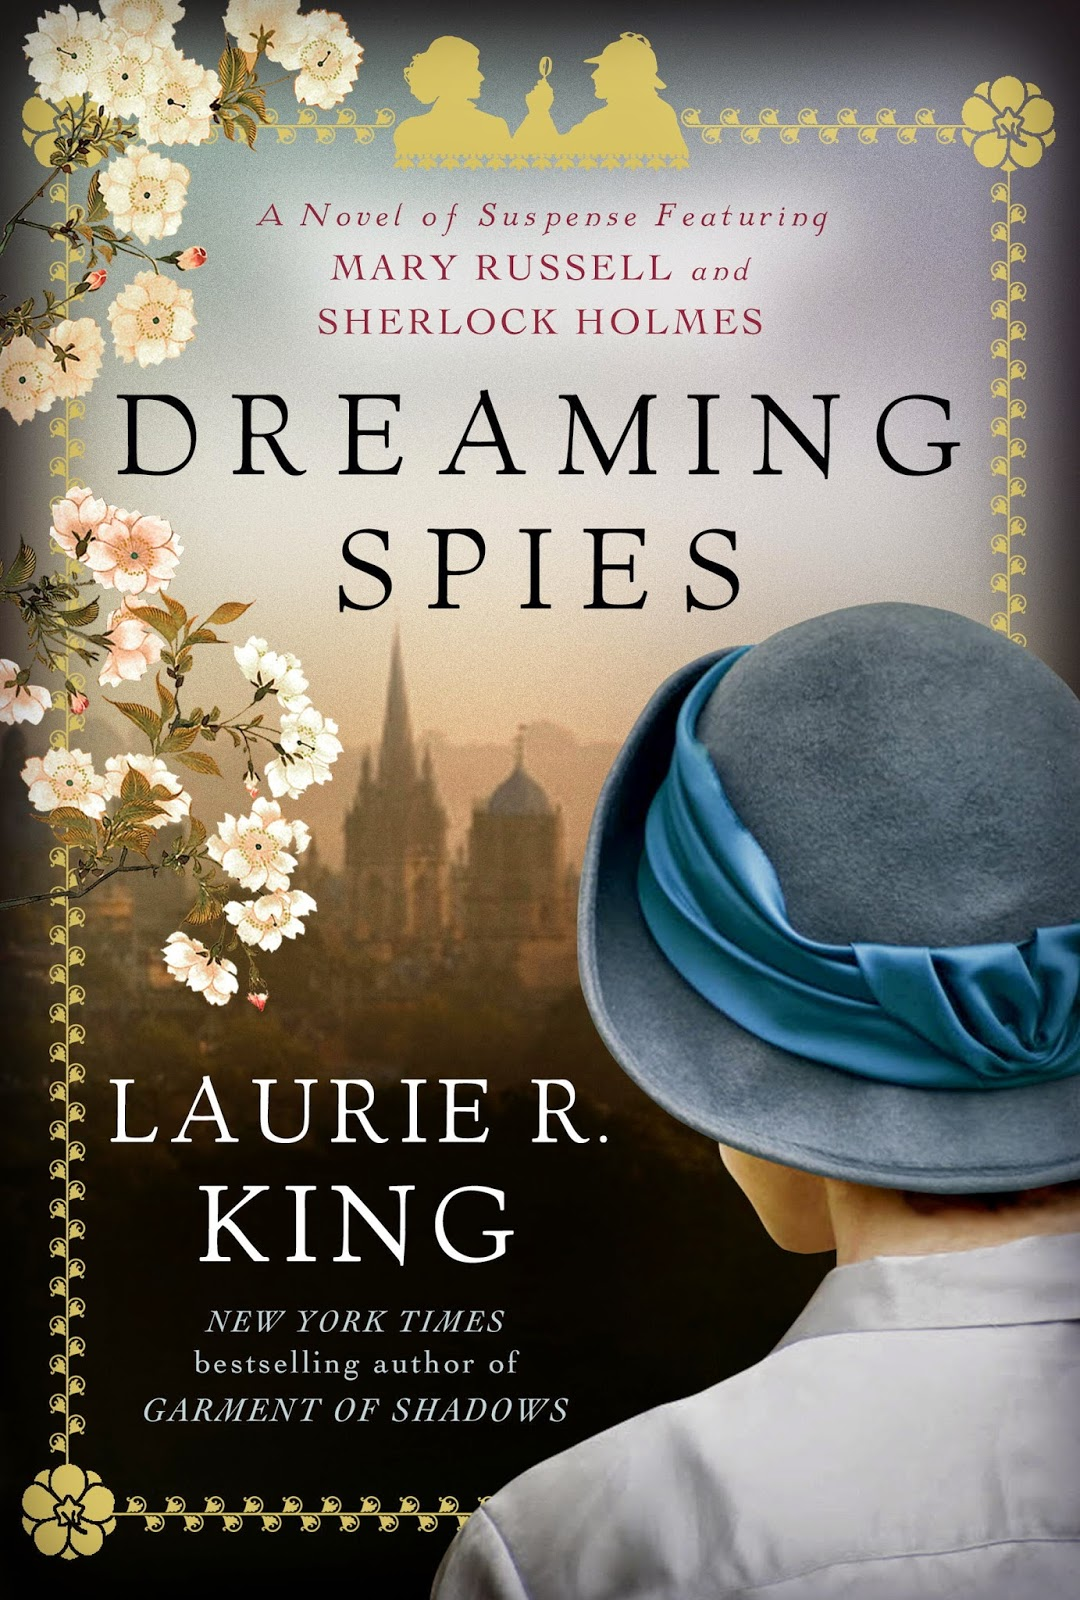 Dreaming Spies, Laurie R. King book cover